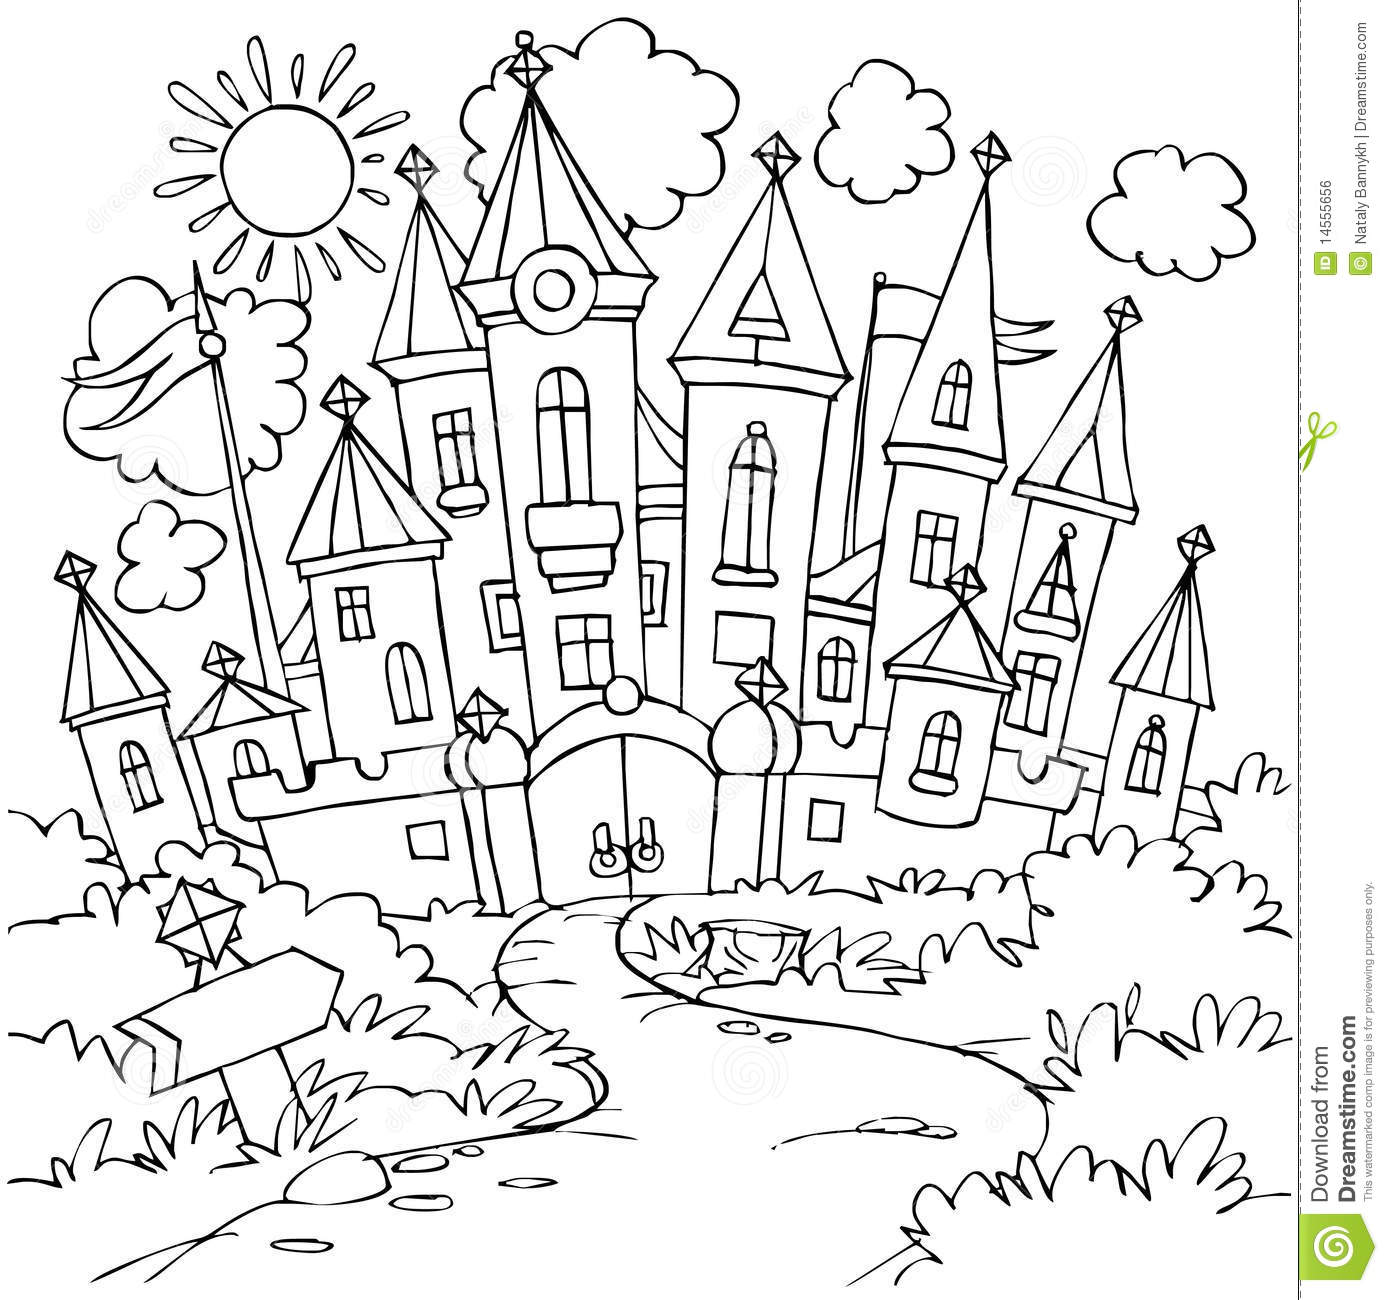 coloring pages castle - castle stock illustration illustration of funny tower